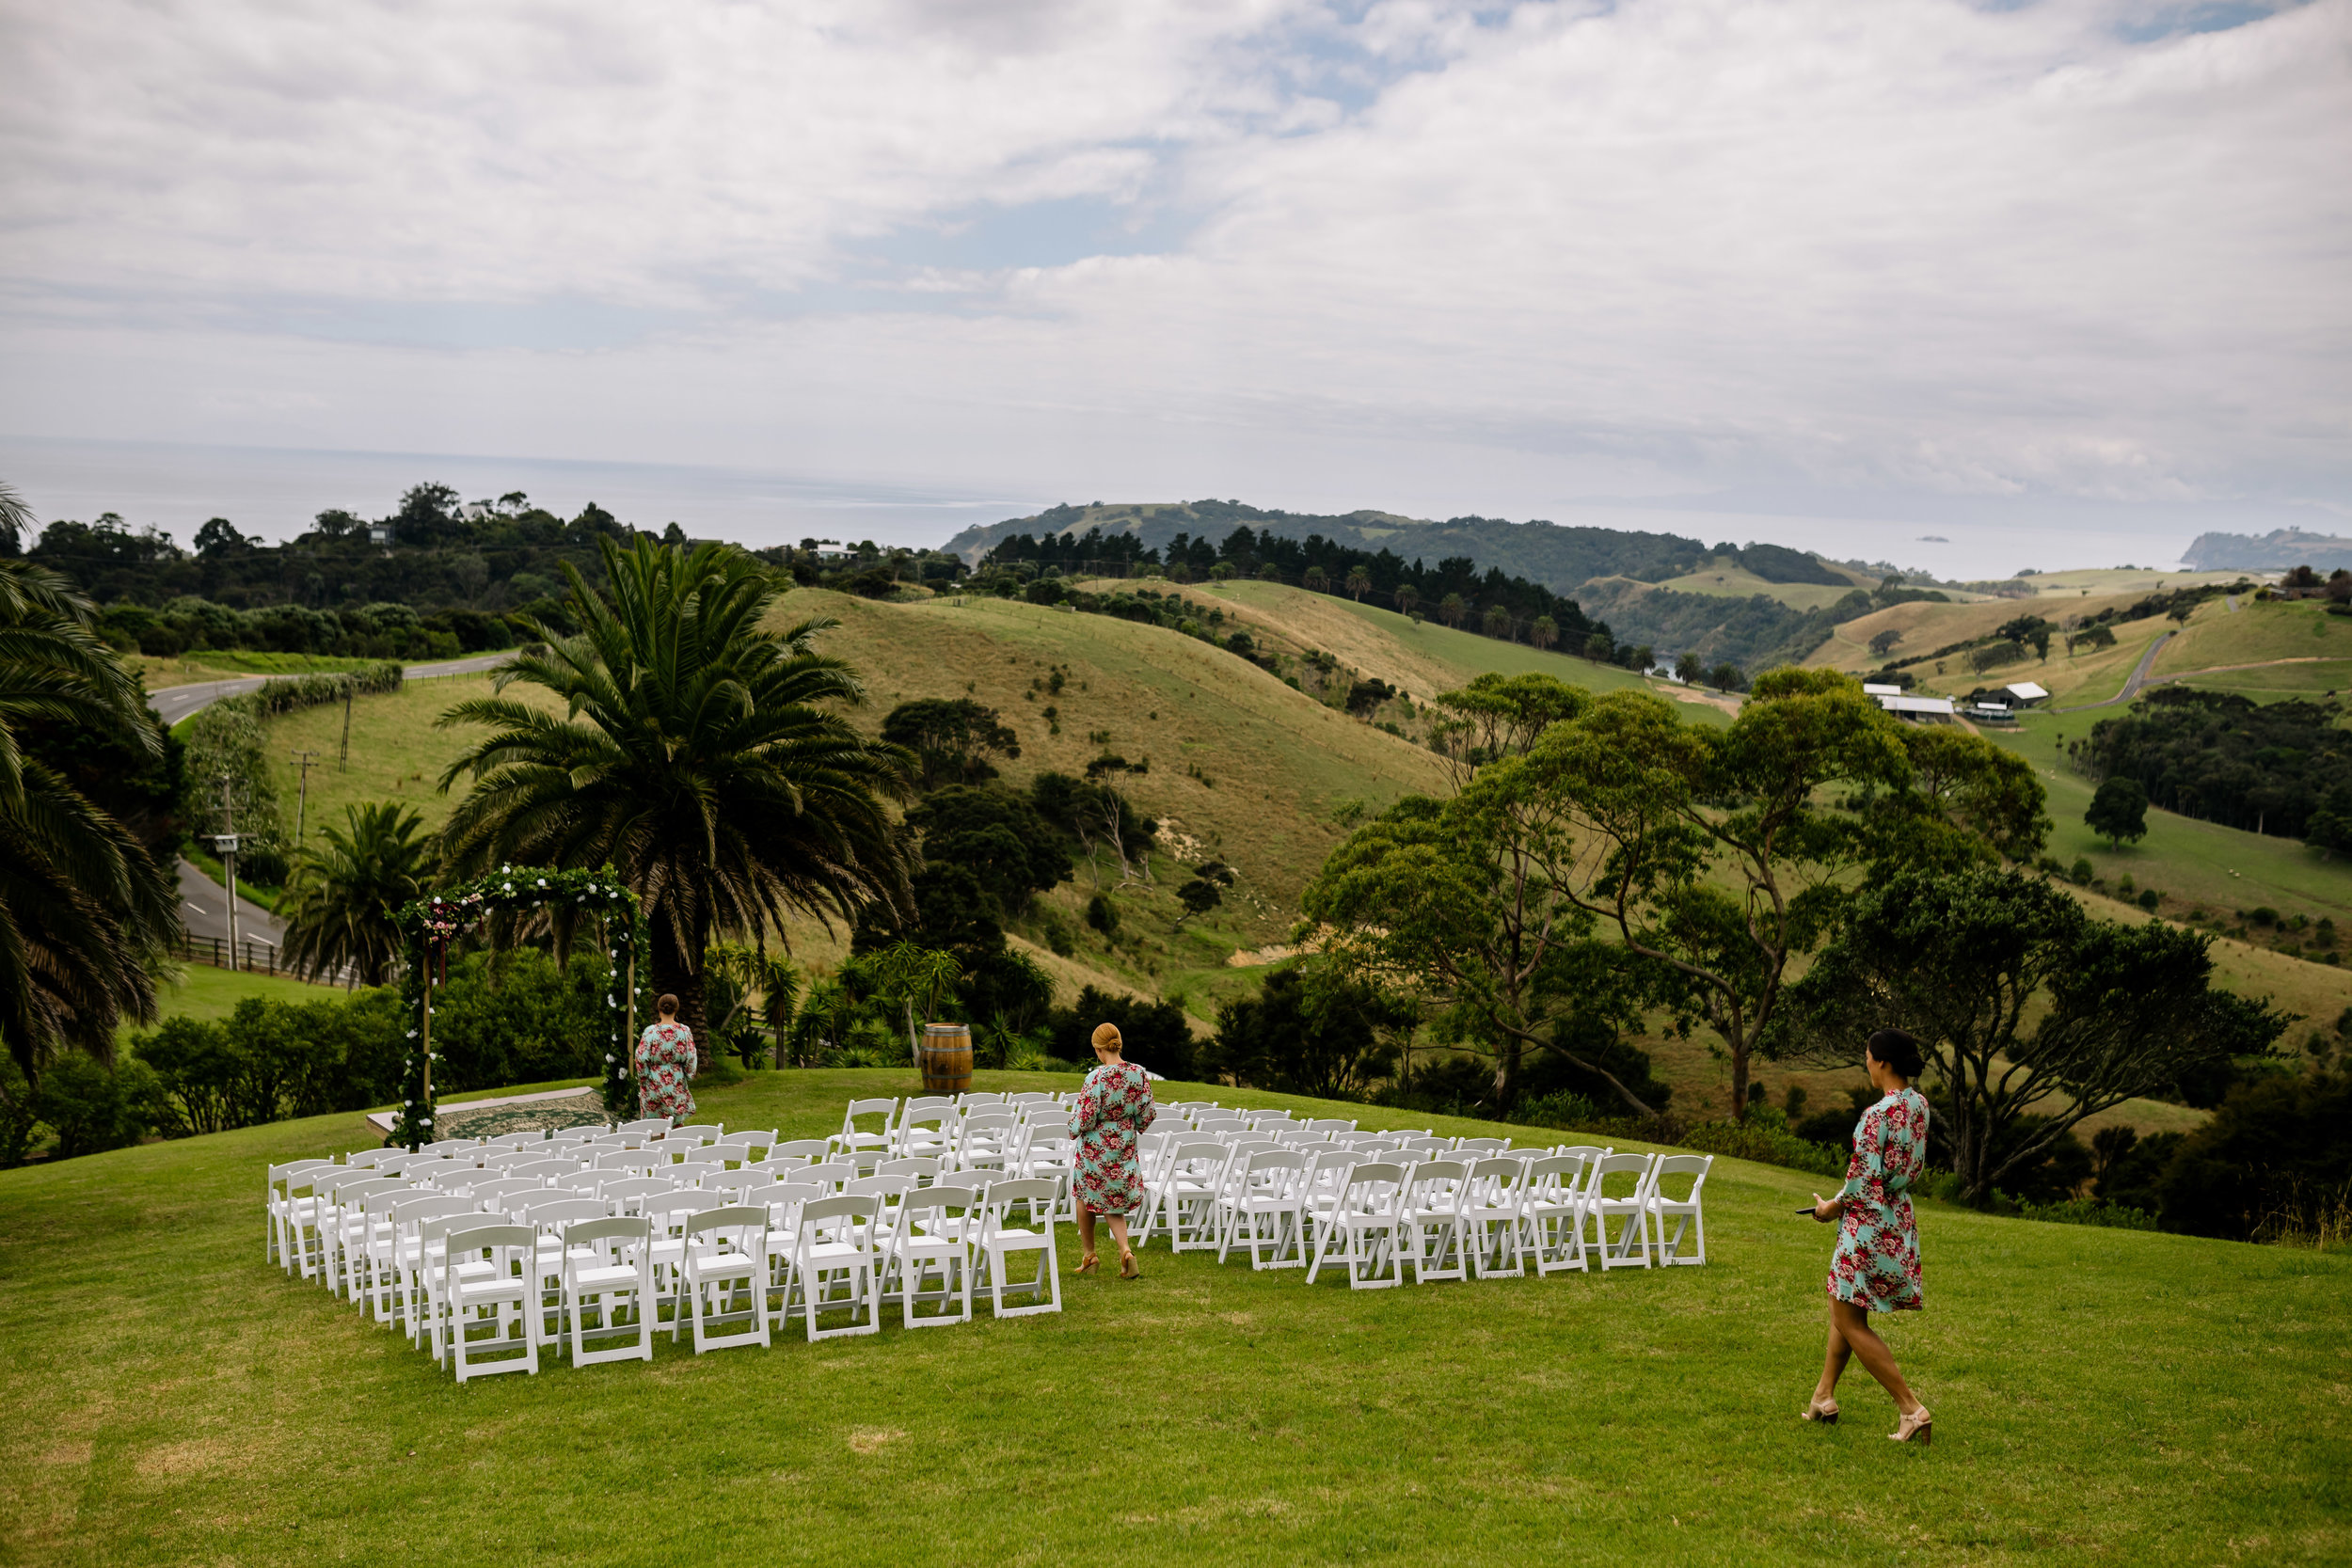 97_Alex-Tommo-wedding-the-official-photographers_SOP_3040.jpg